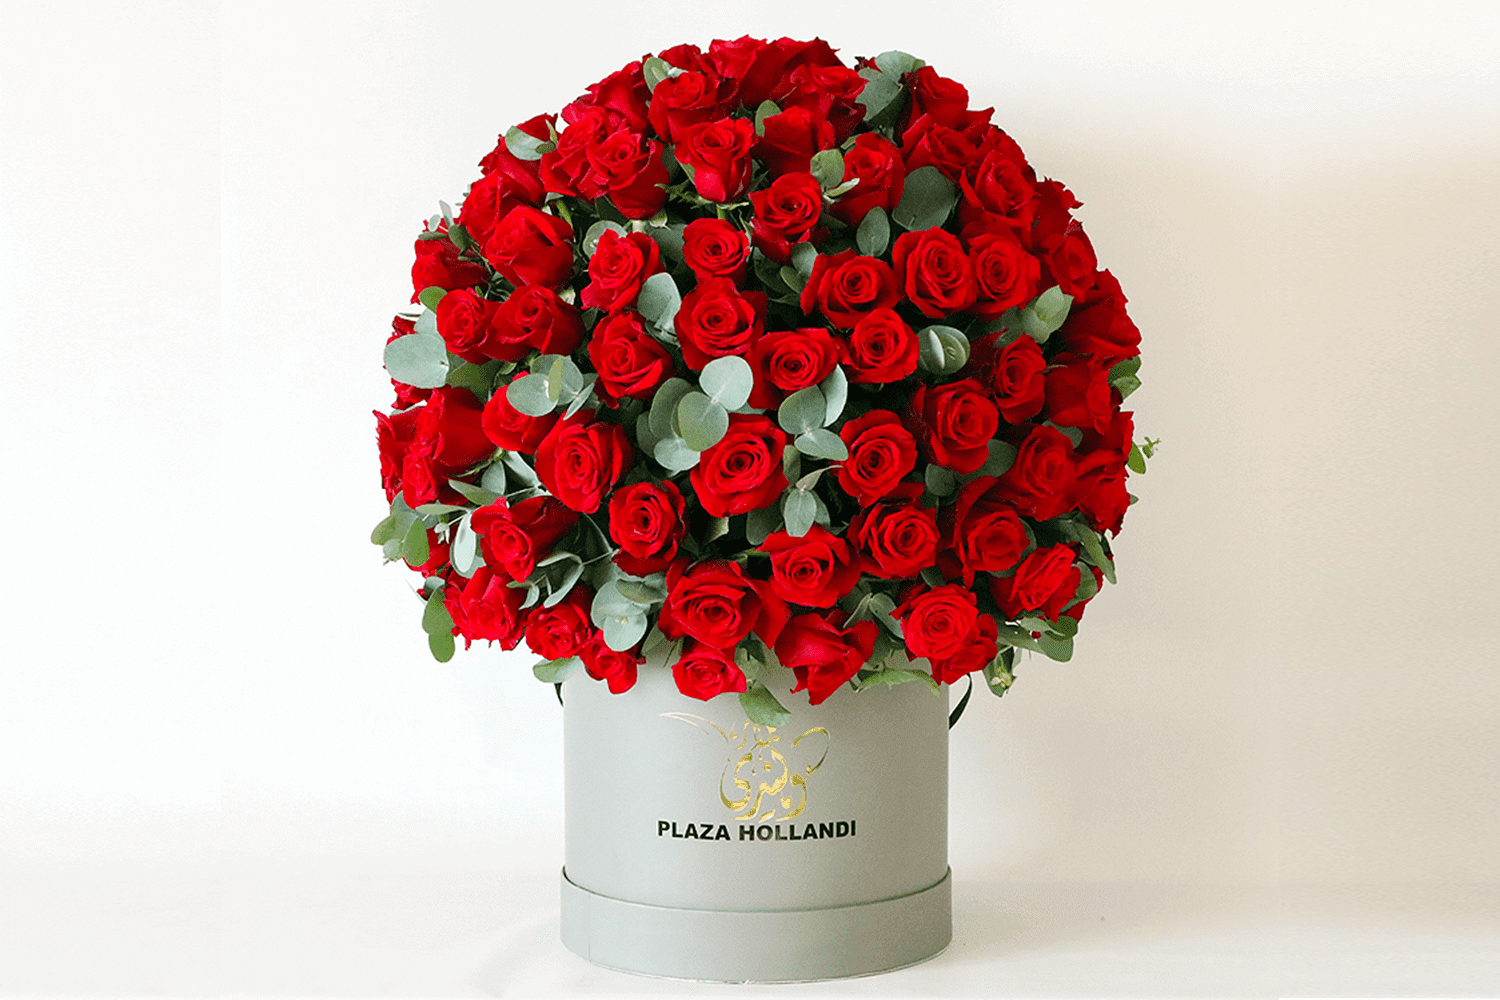 Valentine's Day Red roses and Eucalyptus in a plaza Hollandi hat box